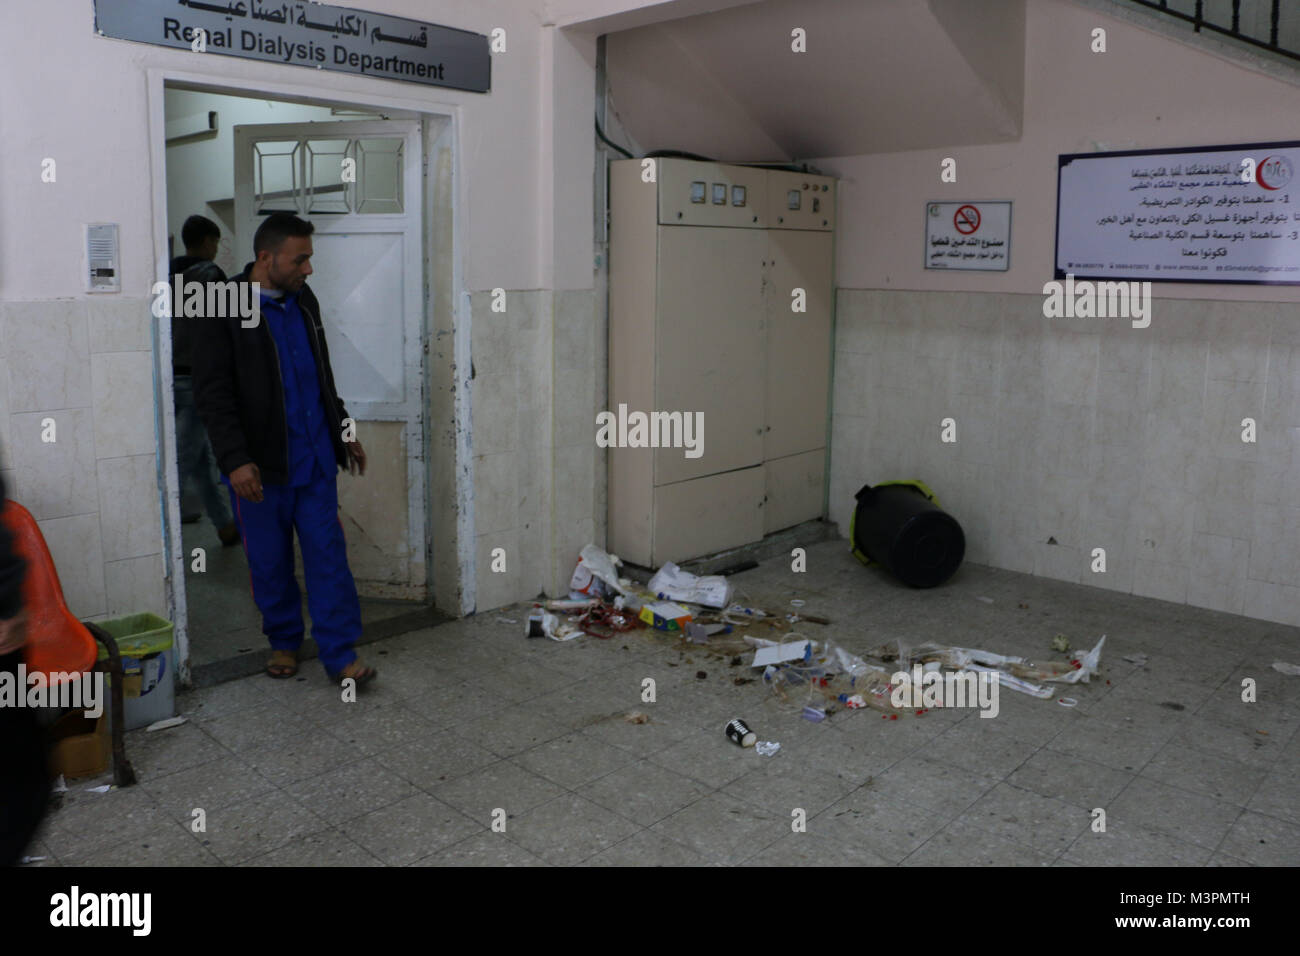 Gaza city, Gaza, Palestinian territory. February 12, 2018 - Hospital cleaners join a strike in Gaza City to demand - Stock Image